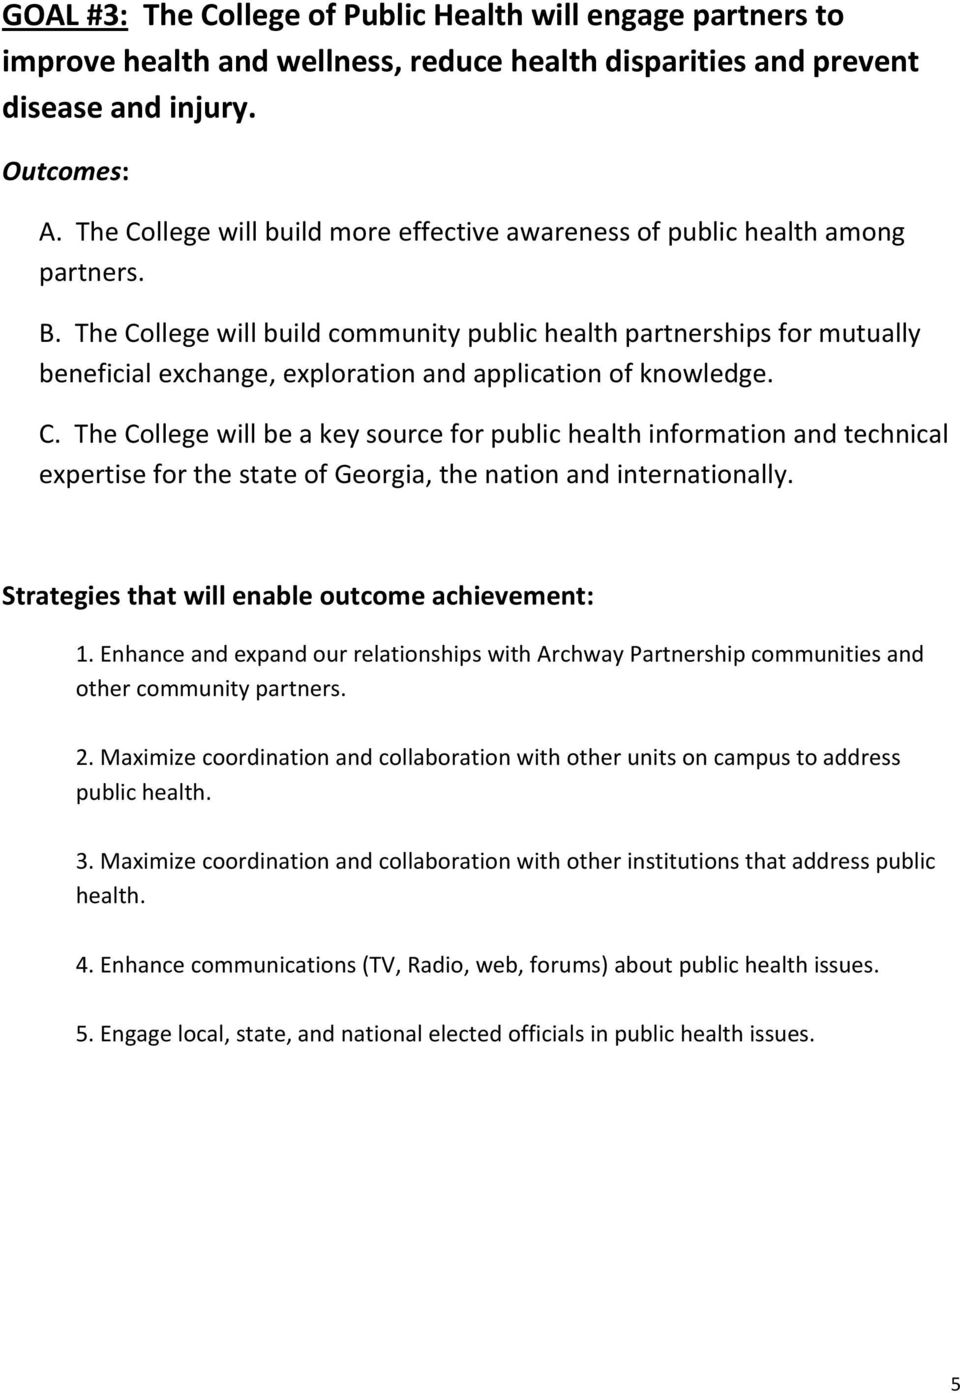 The College will build community public health partnerships for mutually beneficial exchange, exploration and application of knowledge. C. The College will be a key source for public health information and technical expertise for the state of Georgia, the nation and internationally.